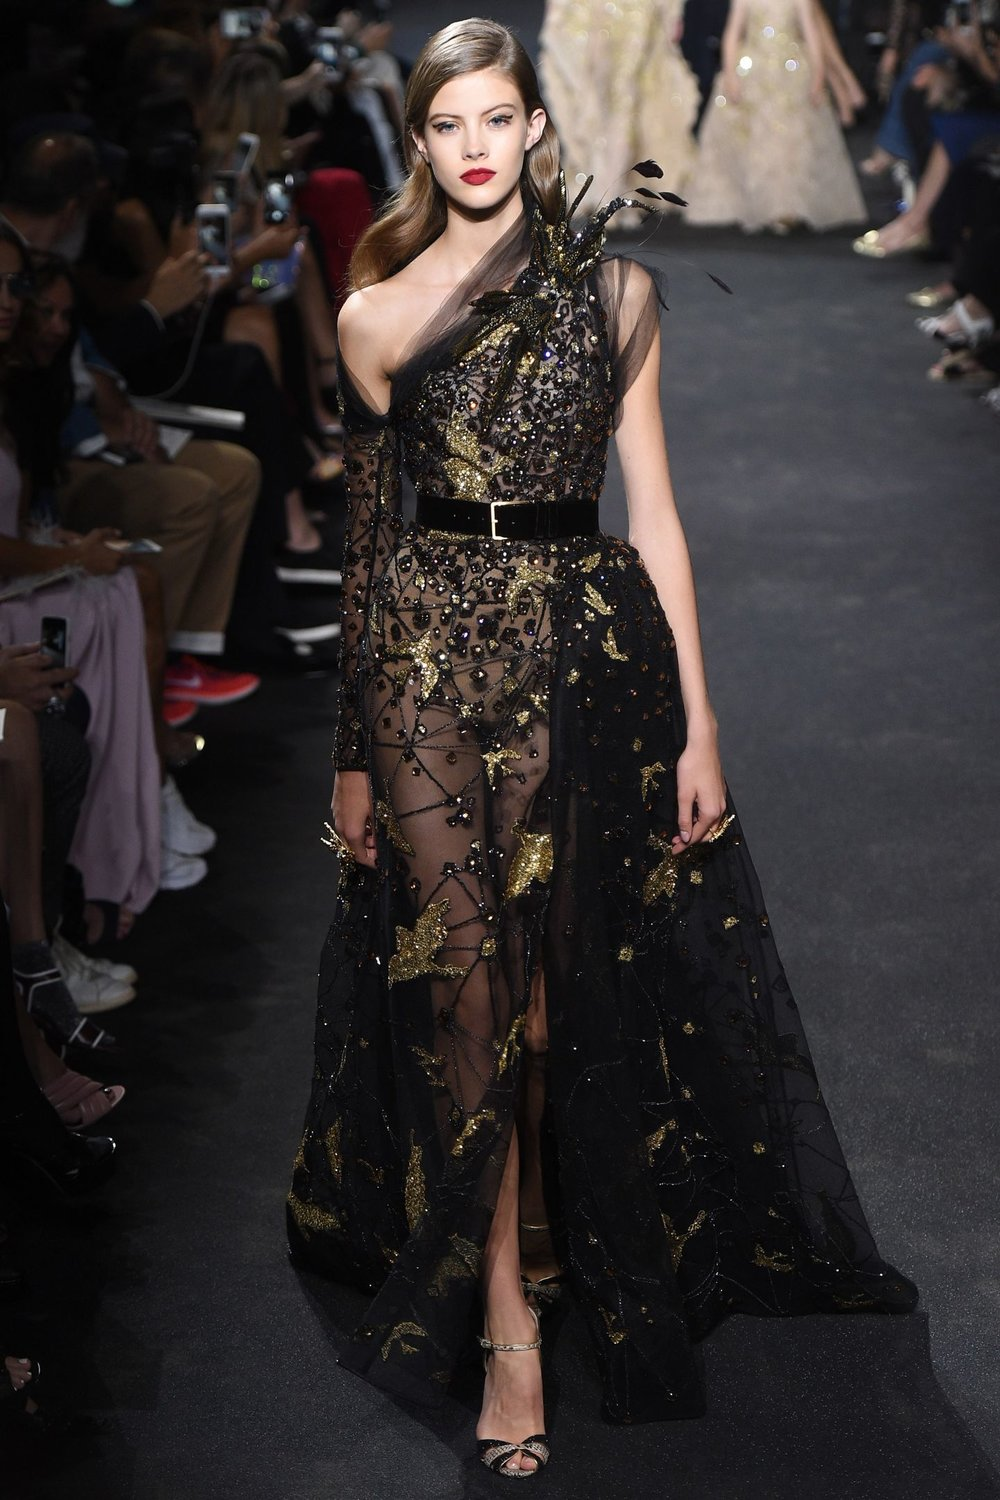 If you want to look glamorous and sexy Elie Saab has just demonstrated what you need to do: wear something long, off-the-shoulder, and semi-transparent!